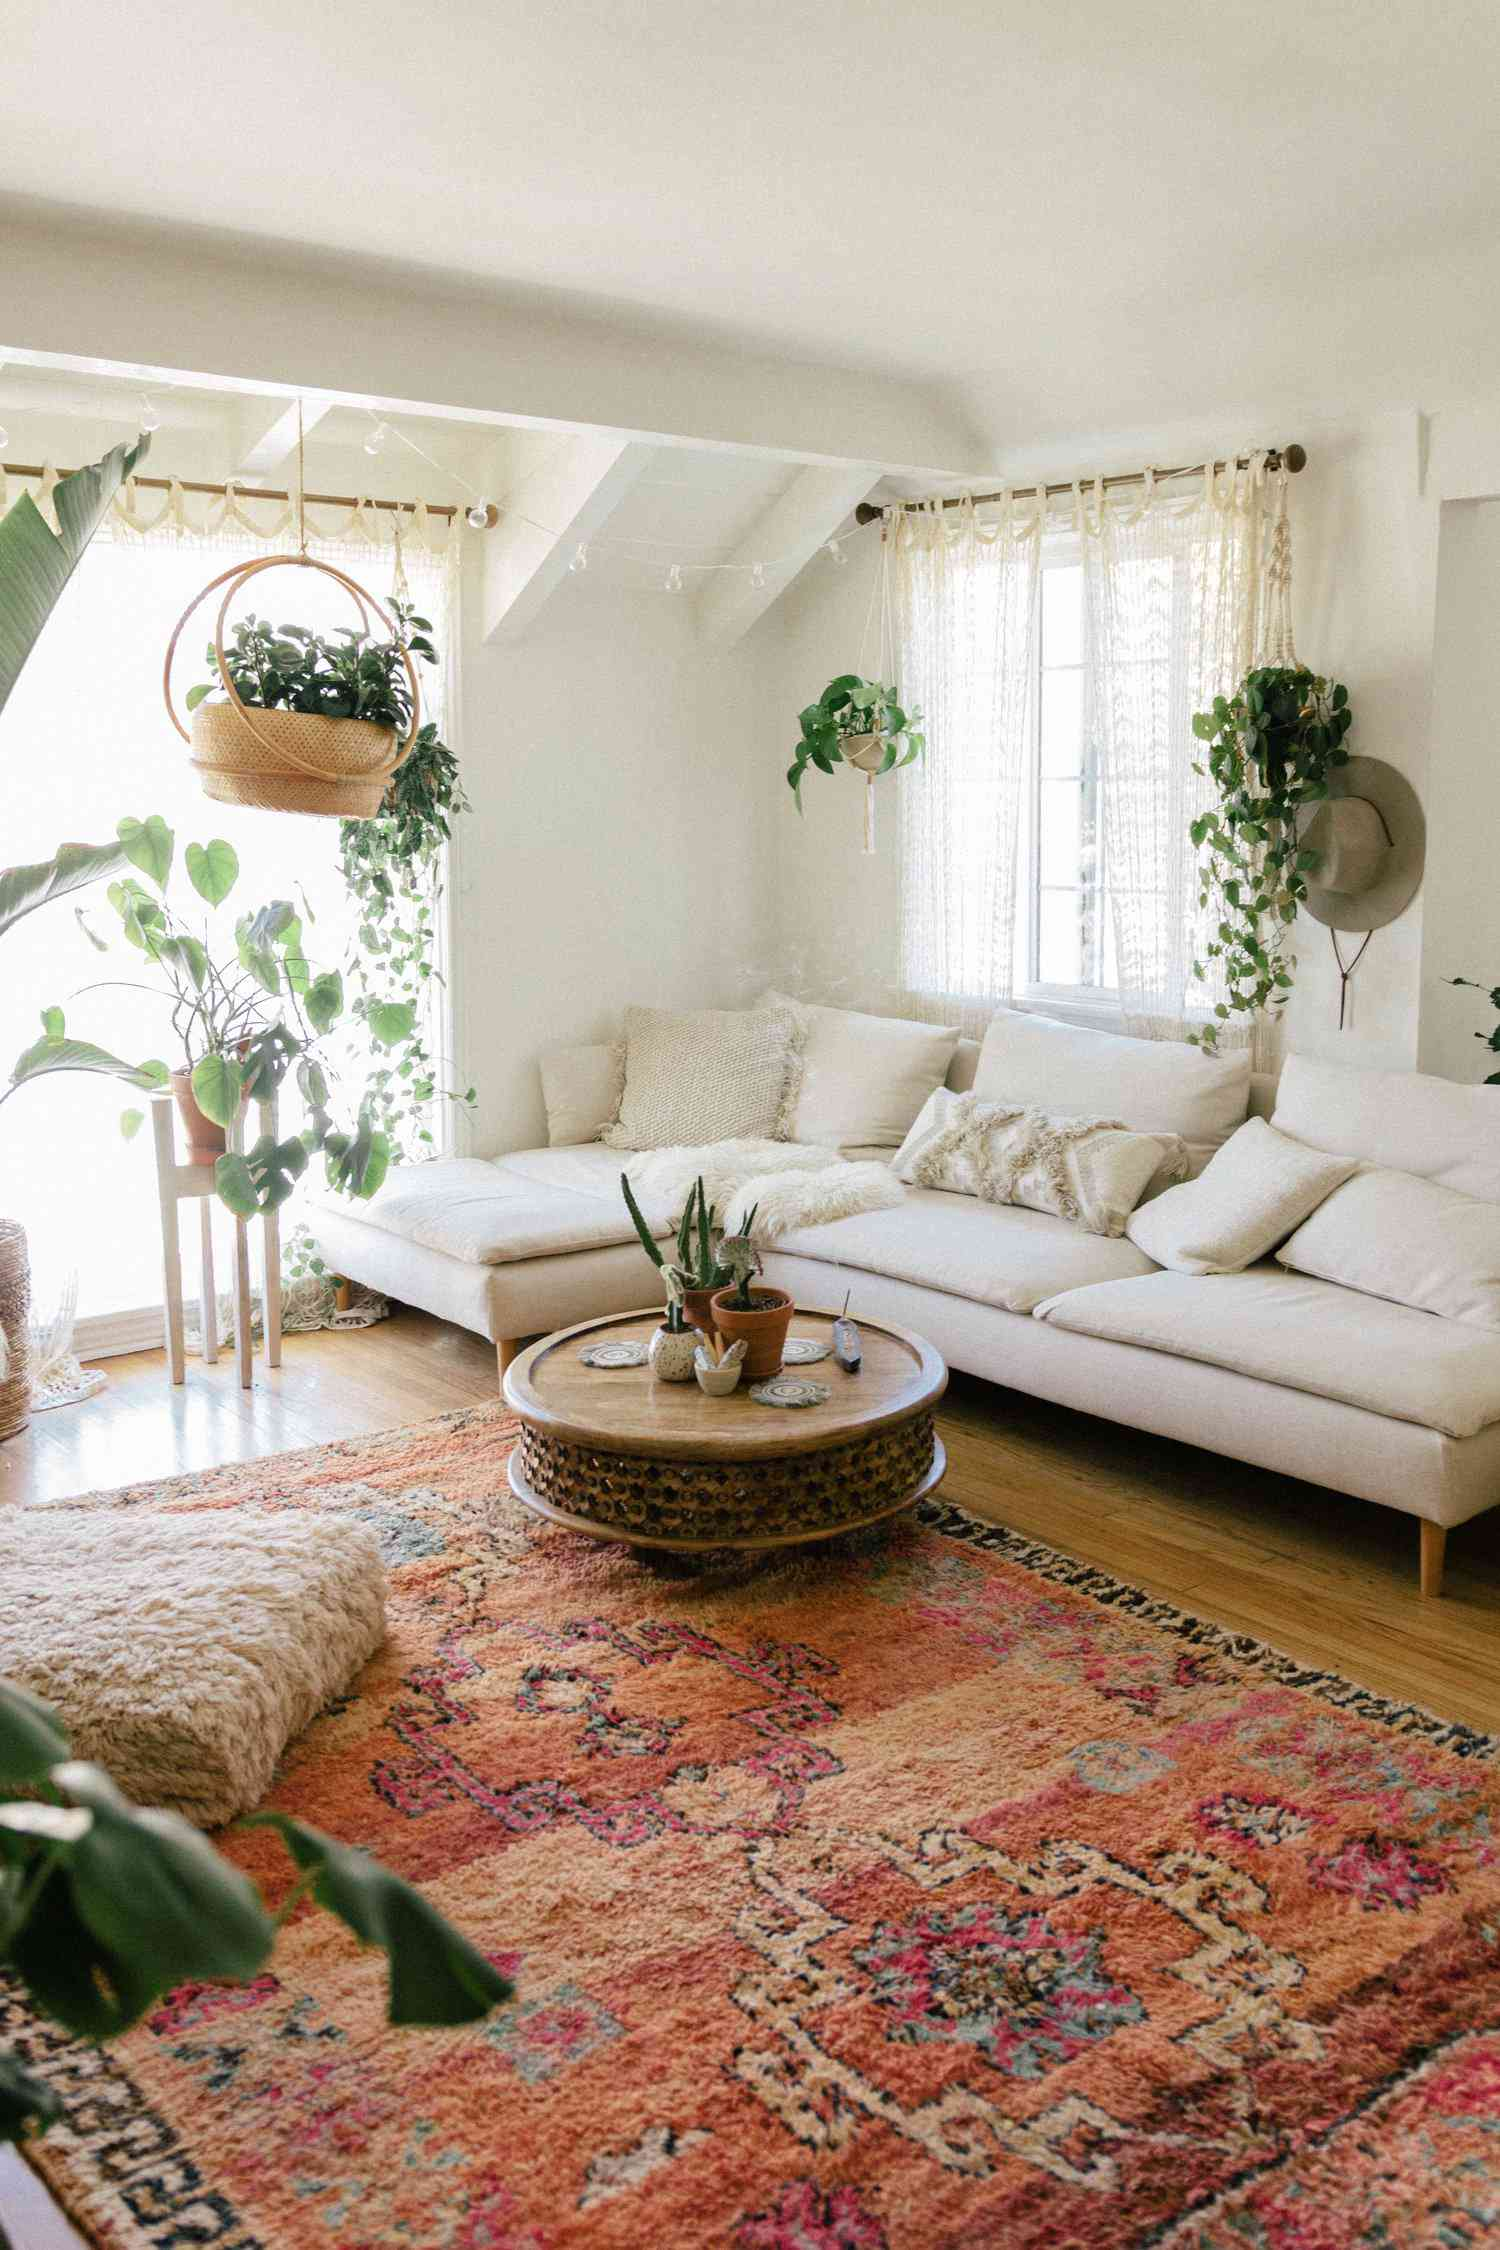 These 10 Tall Indoor Plants Will Turn Your Home Into a Jungle